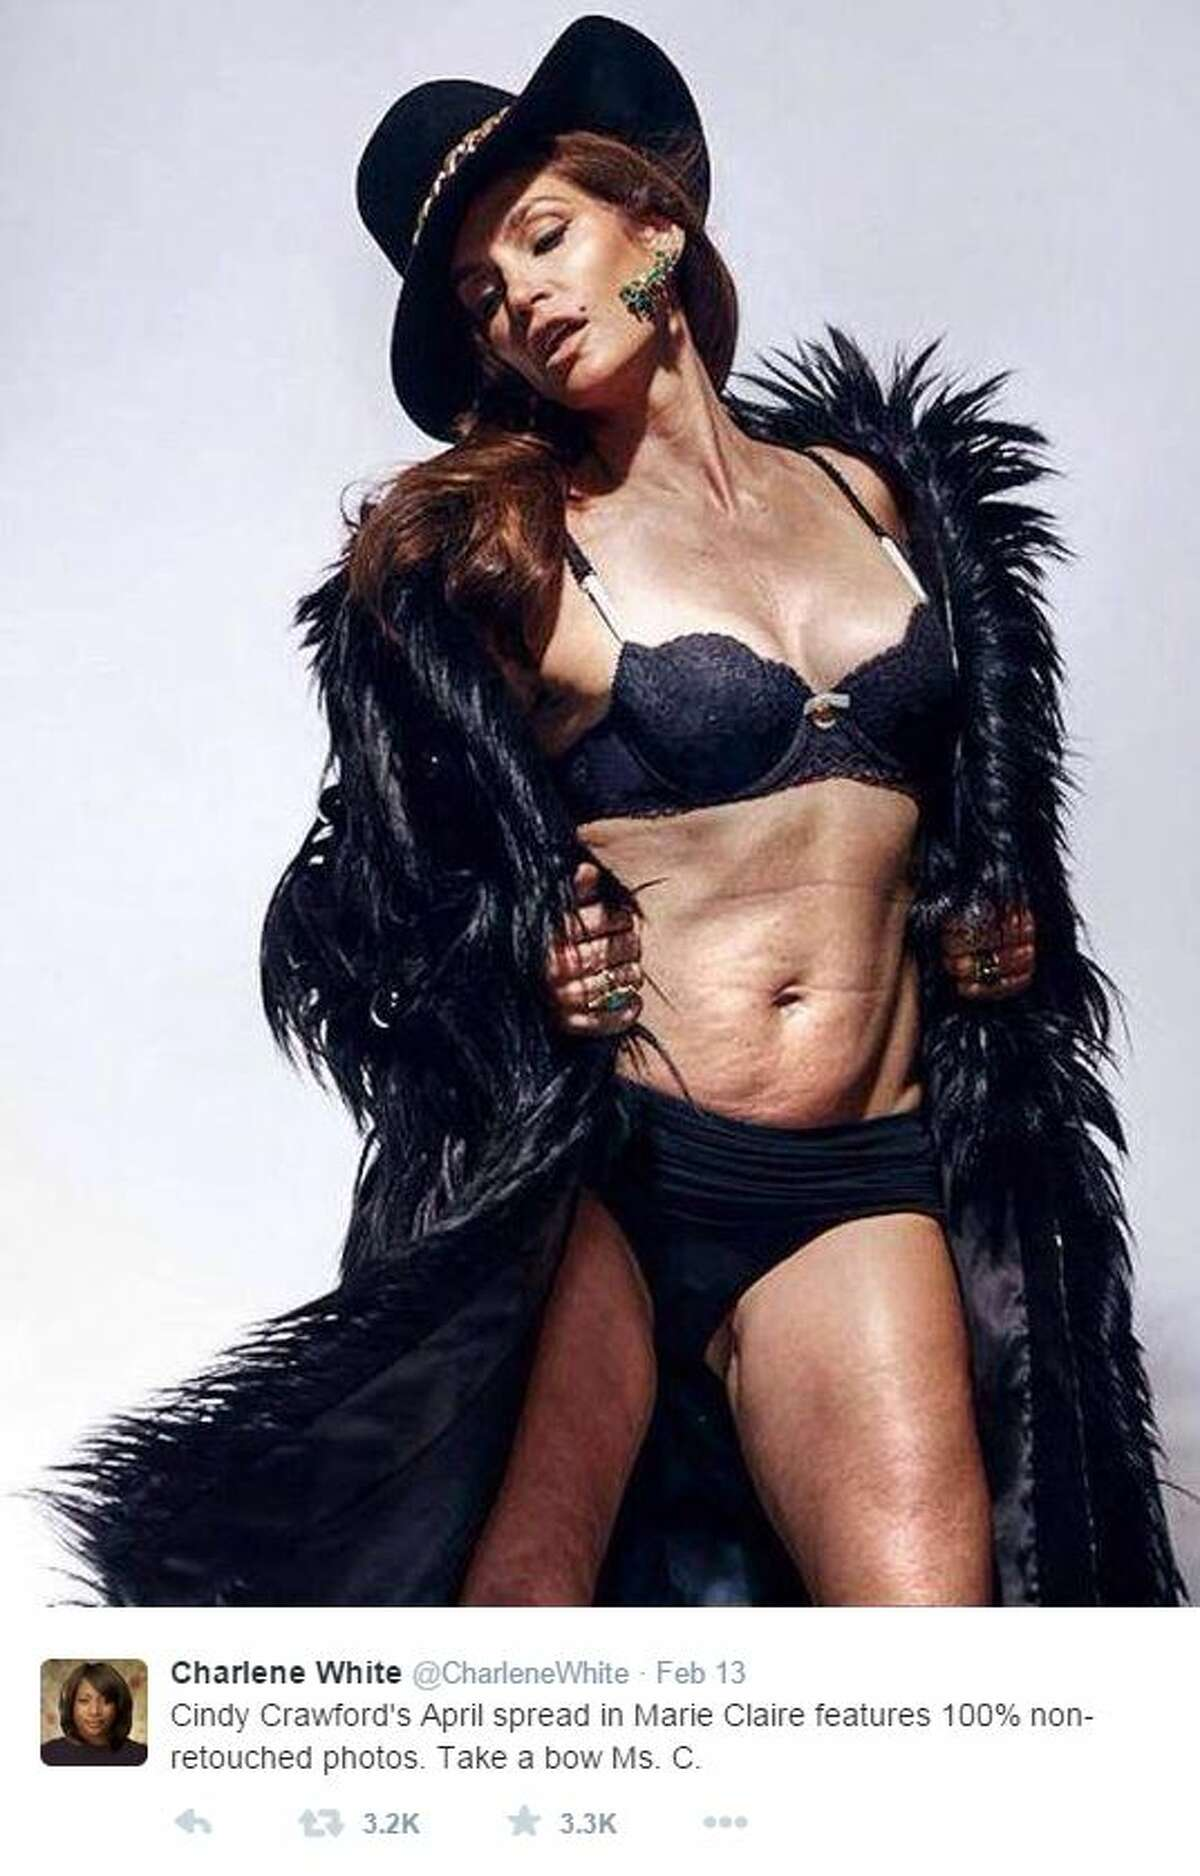 The American supermodel who gained popularity in the 1980s and 1990s, Cindy Crawford, is causing a frenzy again. But this time it's not for her perfect features - it's actually the opposite.